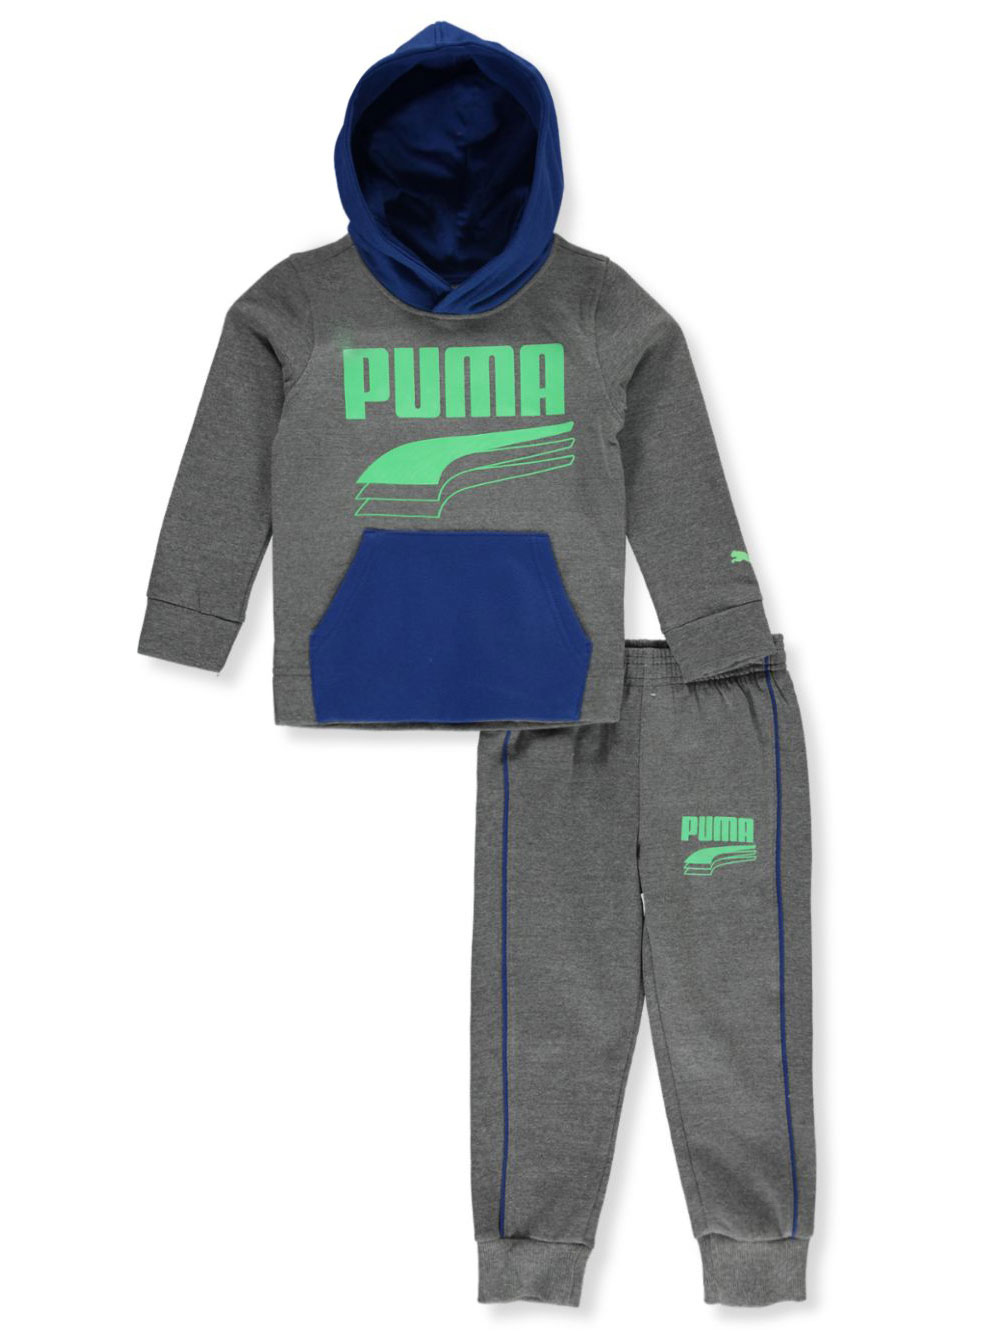 Boys' Layer Logo 2-Piece Sweatsuit Outfit